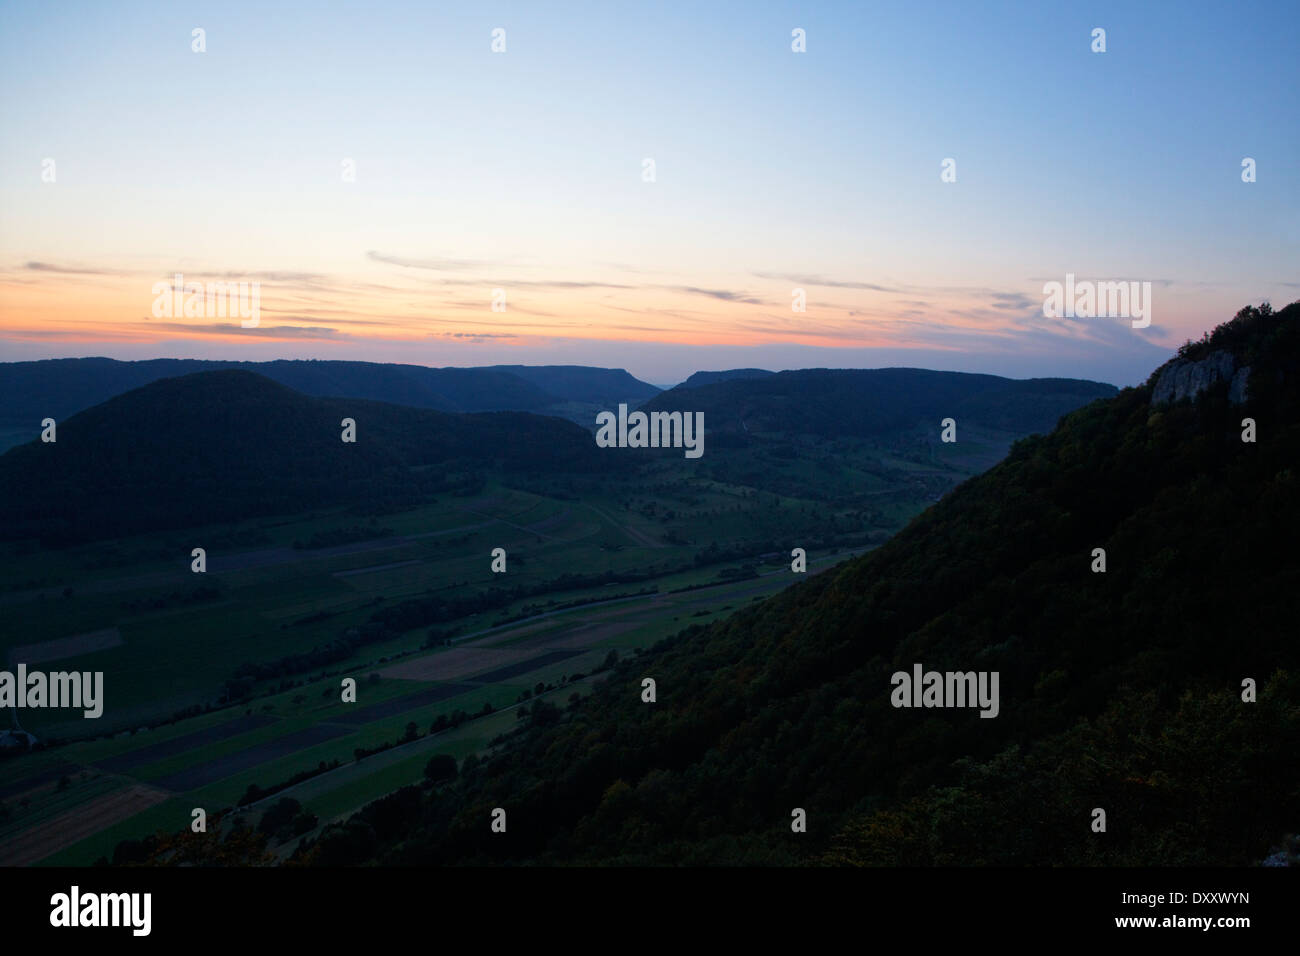 Germany, Baden-Wurttemberg, Swabian Alb, near Geislingen, view from 'Hausener rock' - Stock Image